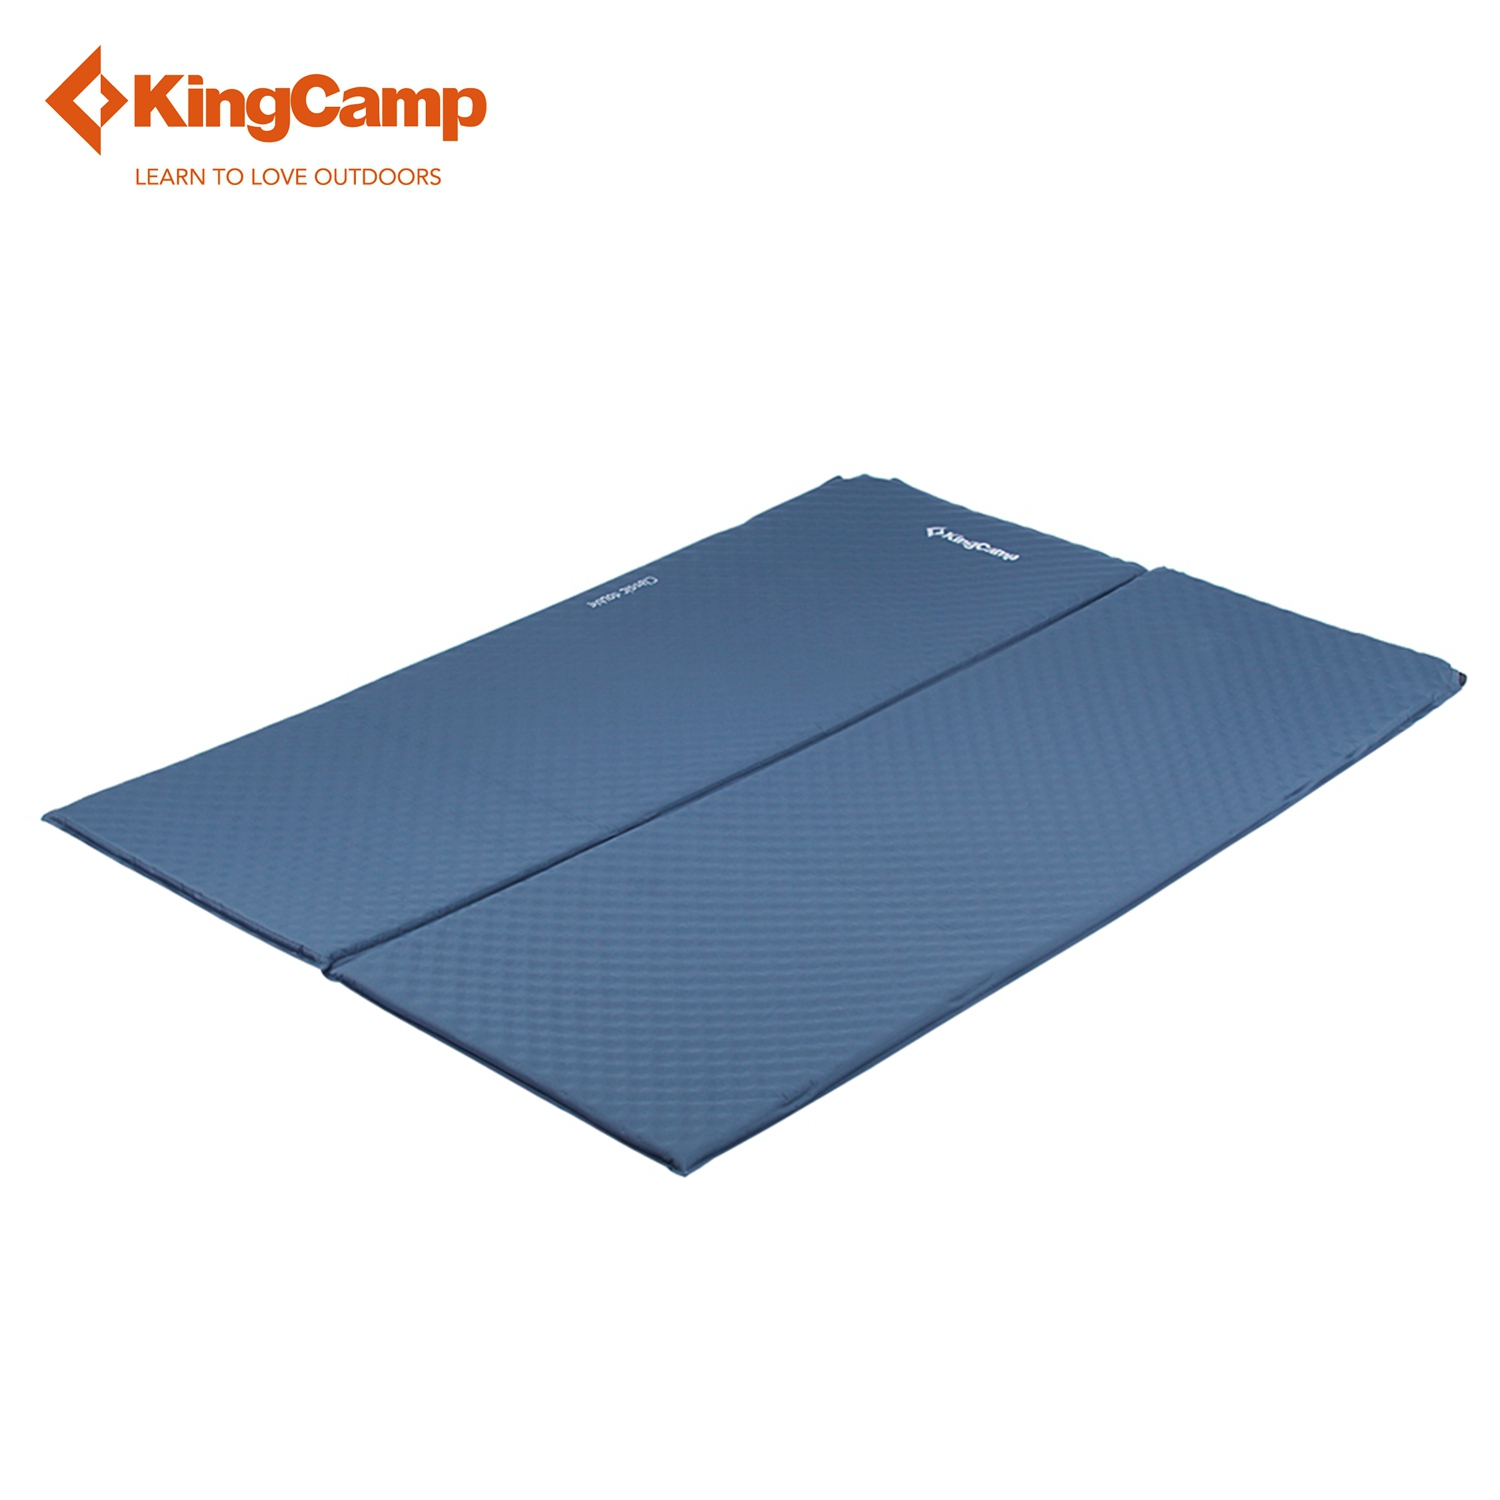 KingCamp Sleeping Pad Classic Double Self-Inflating Sleeping Mats for Hiking Outdoor Camping Mattress Pad for Traveling Trekking толстовка quelle arizona 416191